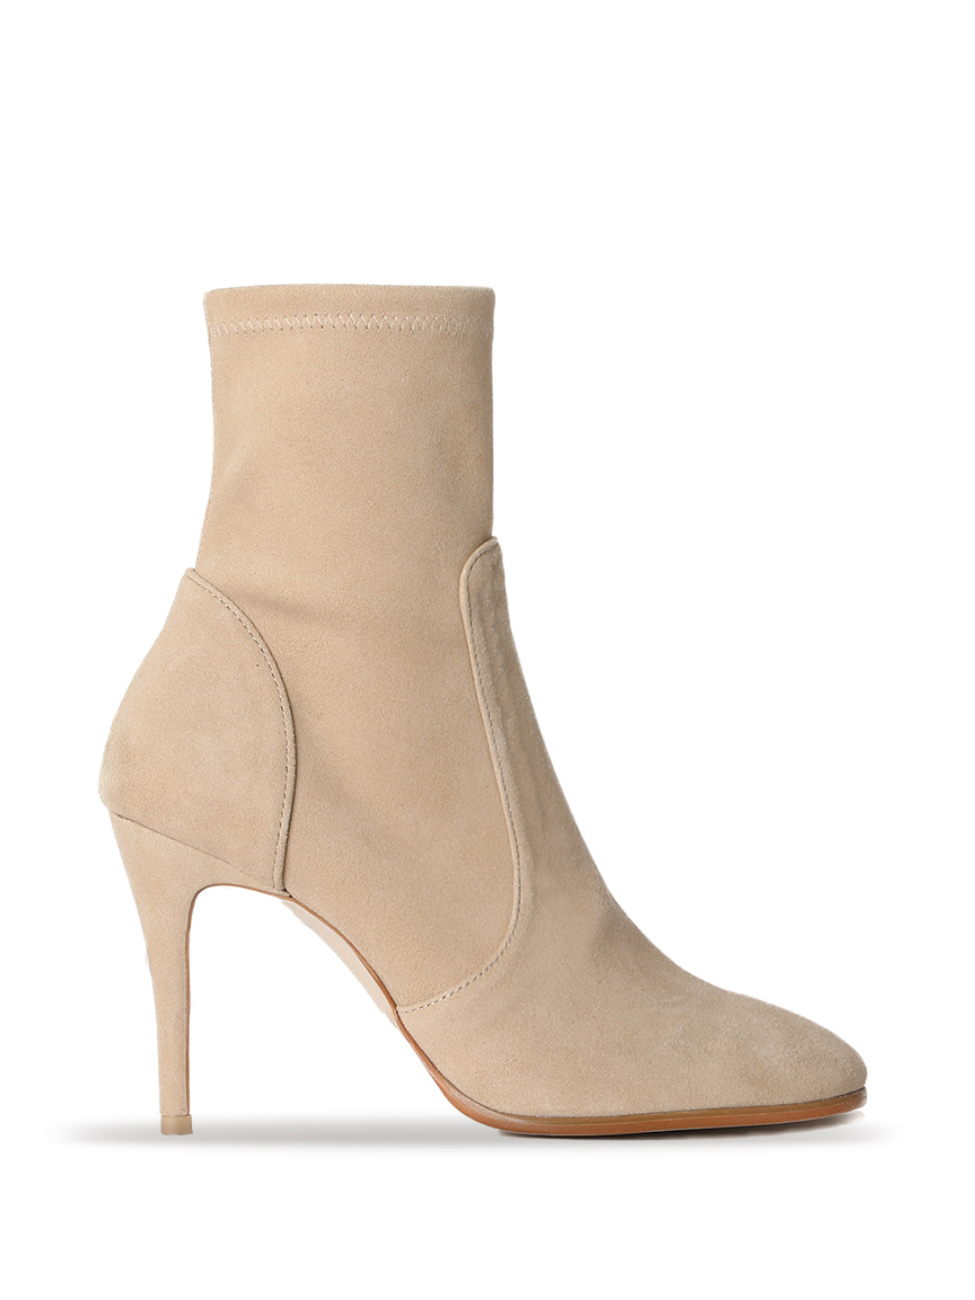 LINDA ROUND TOE ANKLE BOOTS - BEIGE